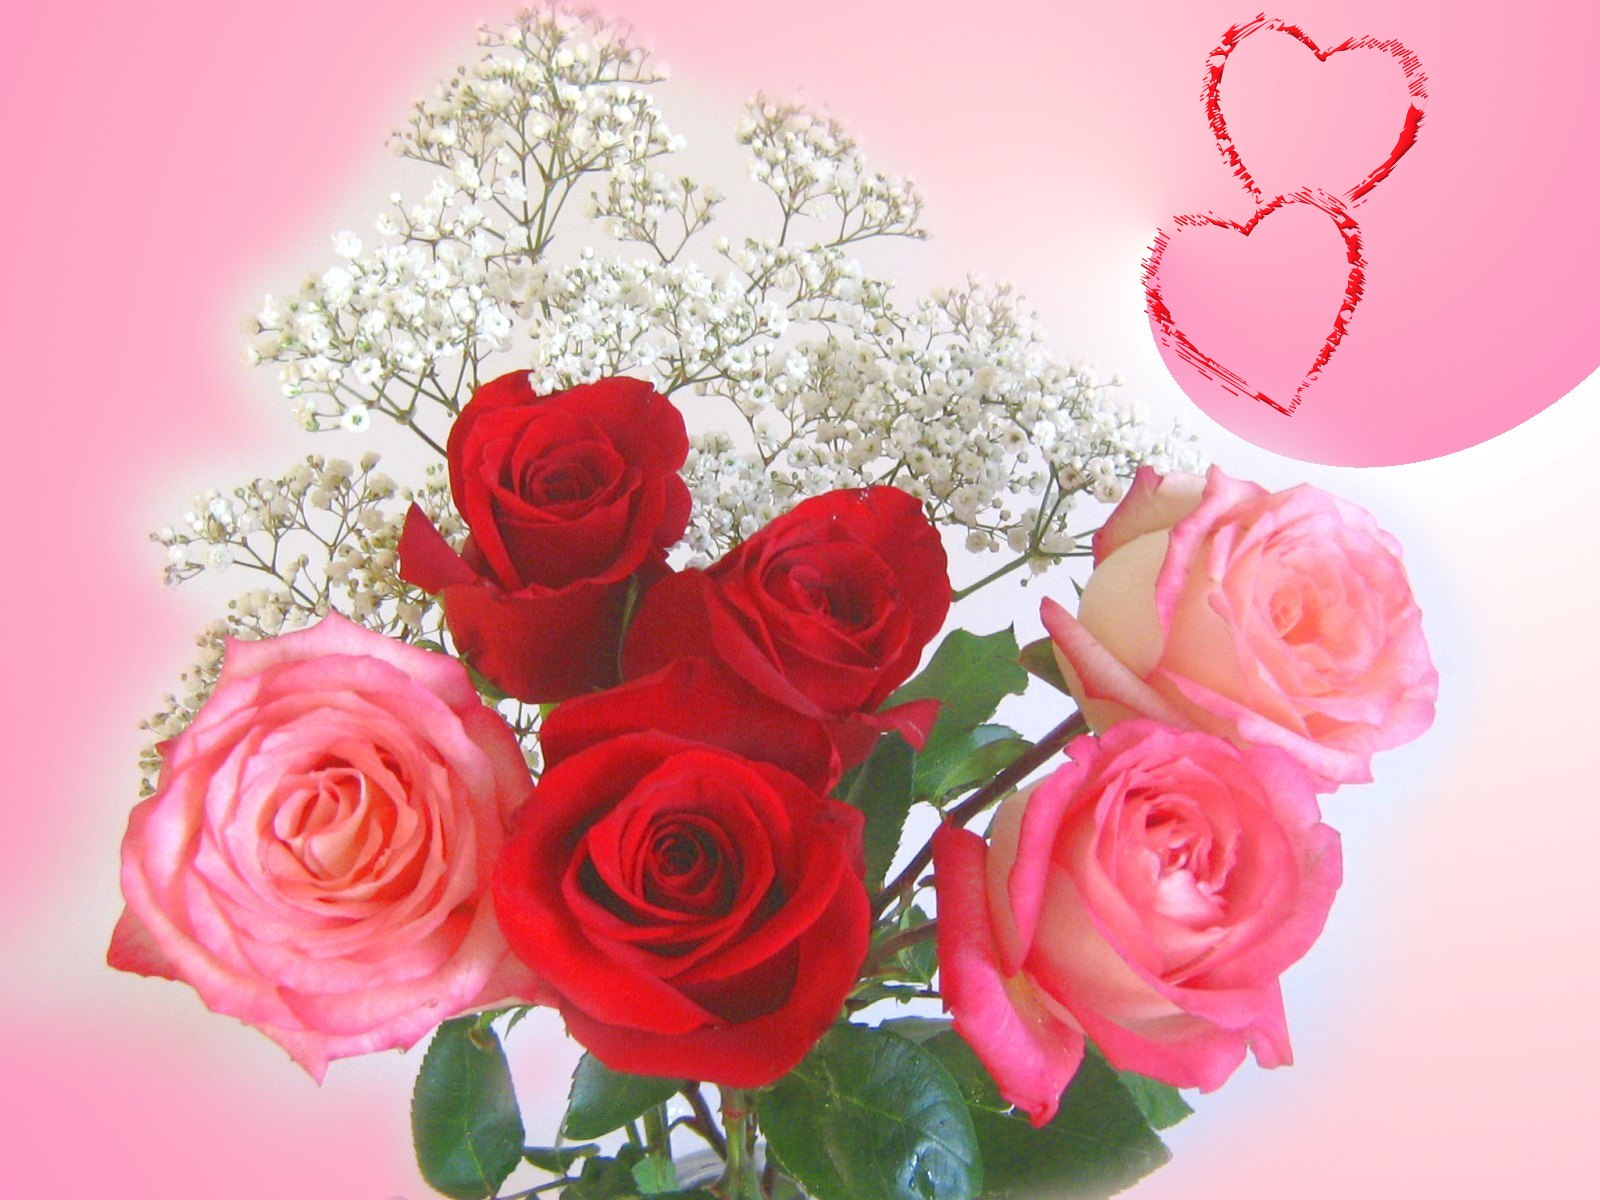 Valentines wallpapers - Valentine s day flower wallpaper ...